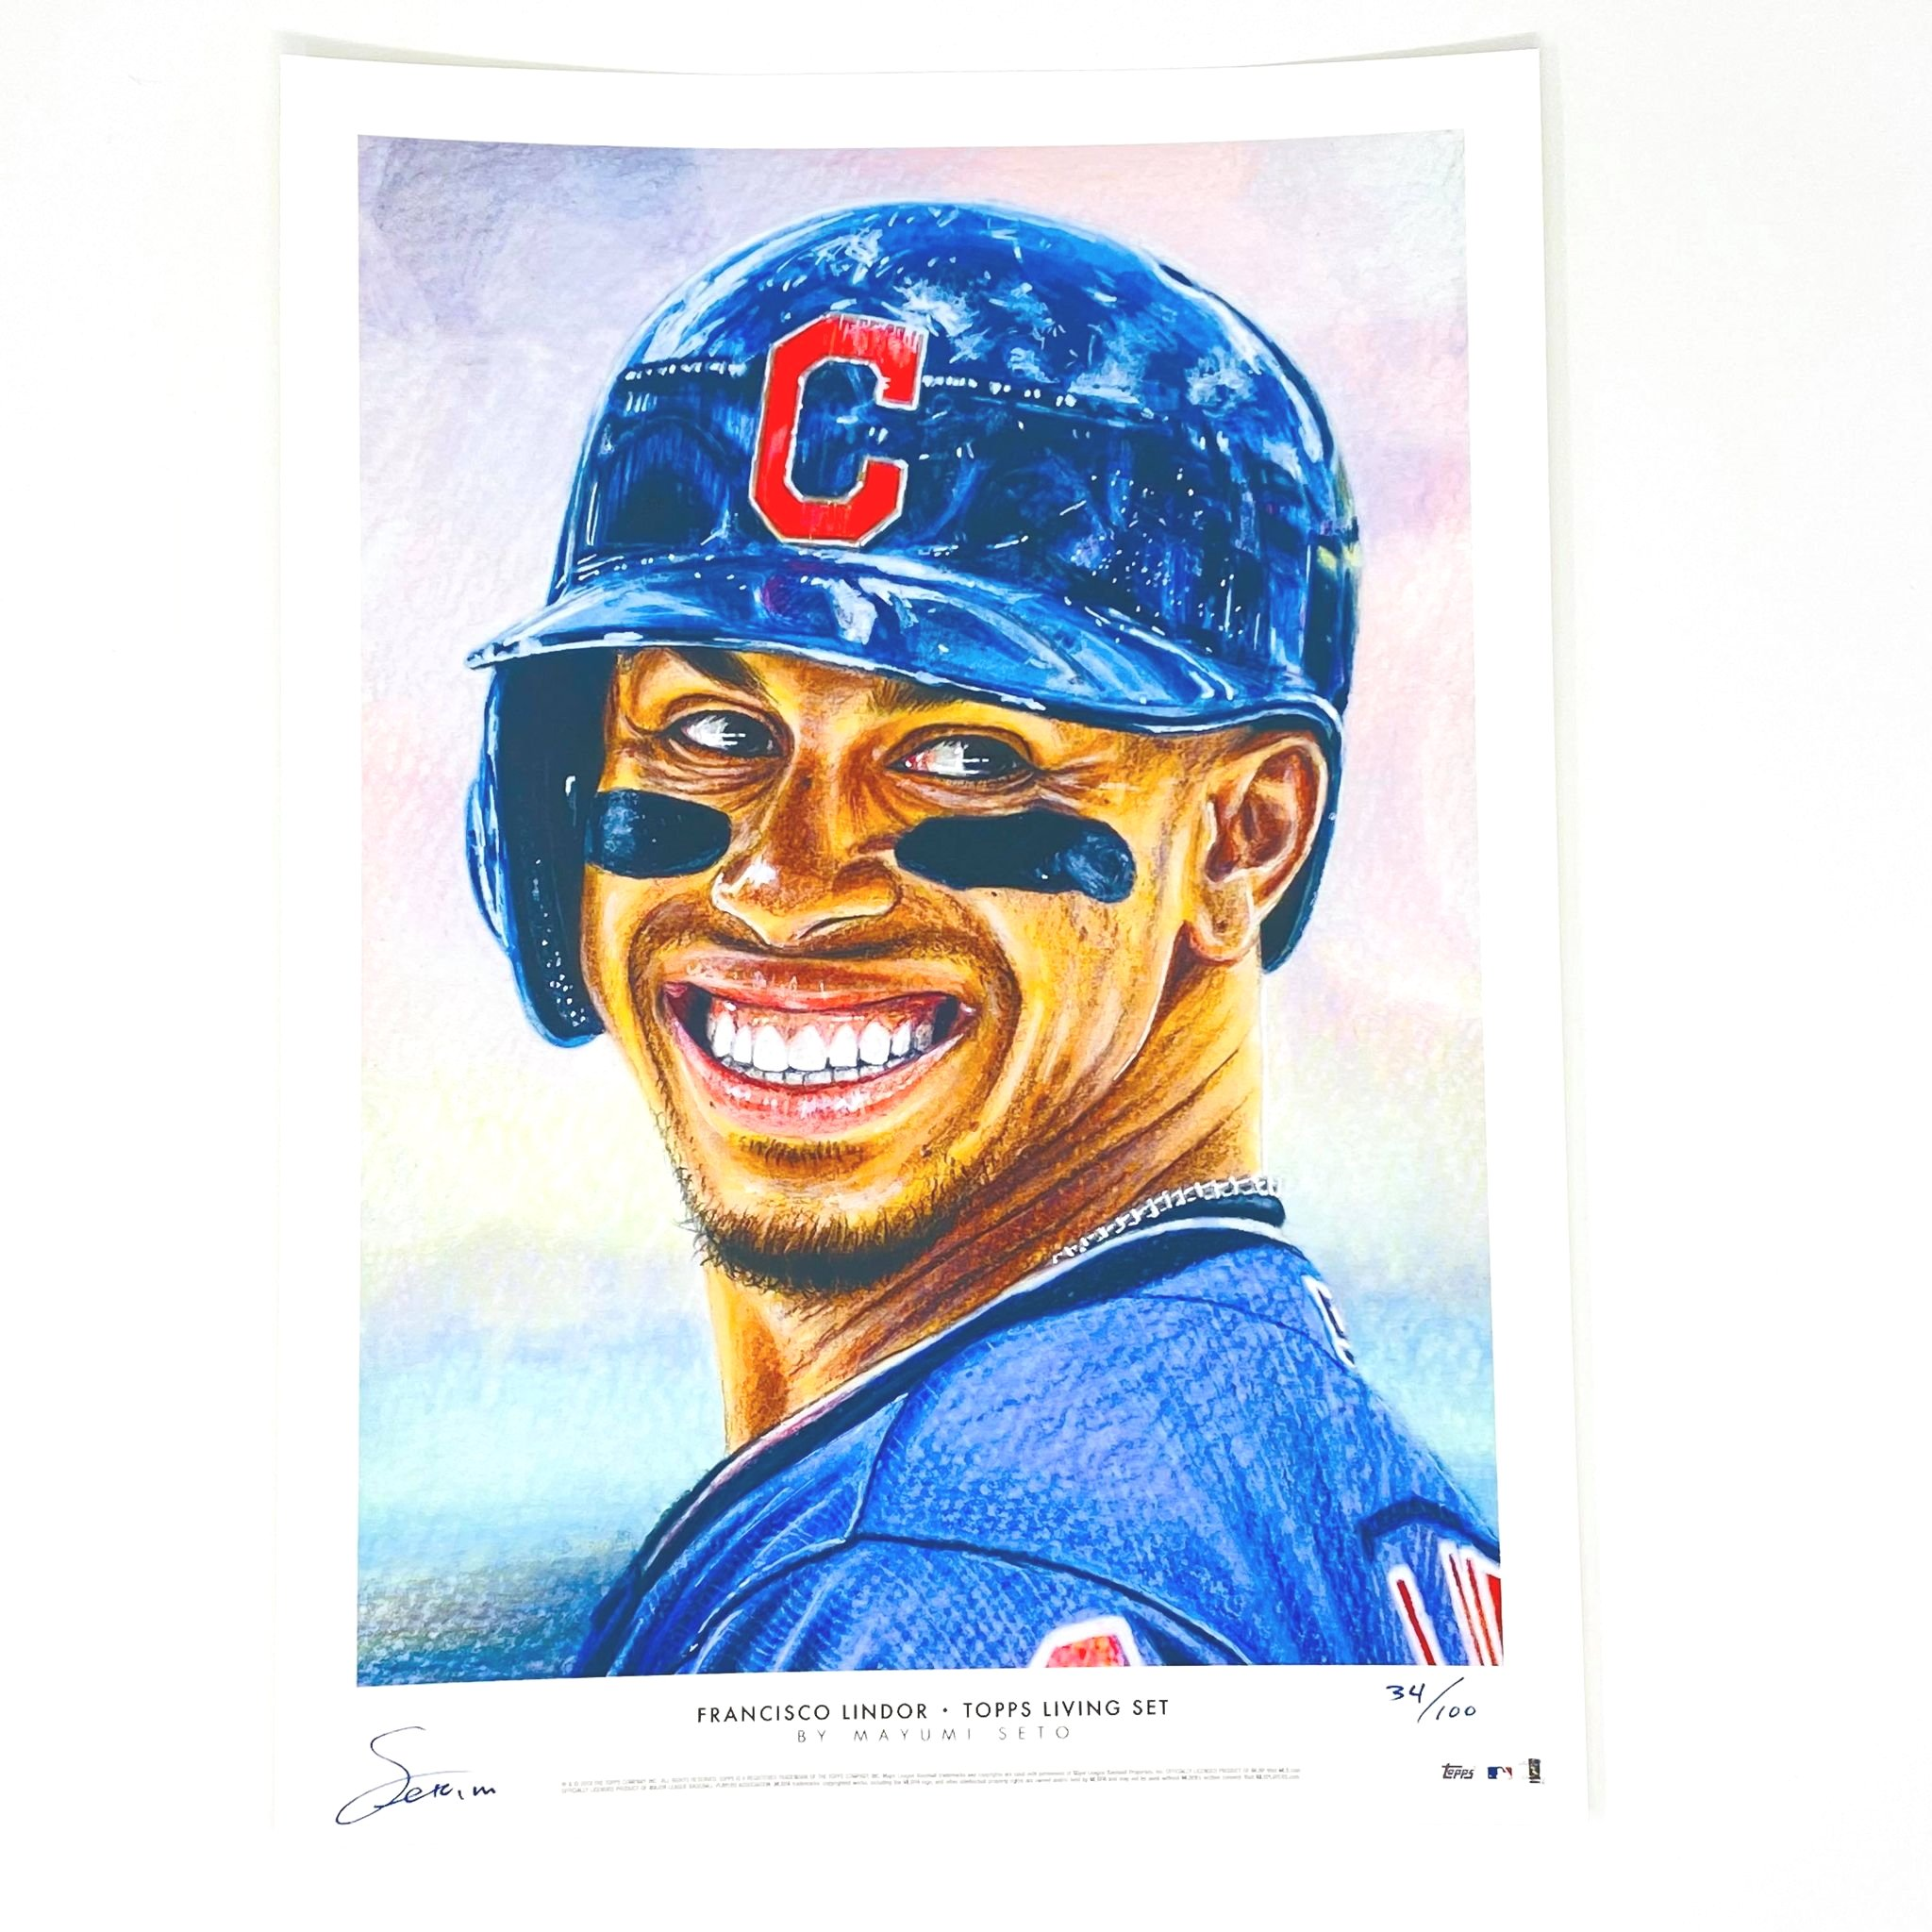 2018 Topps Living Set  Francisco Lindor Art Print #34/100 Cleveland Indians